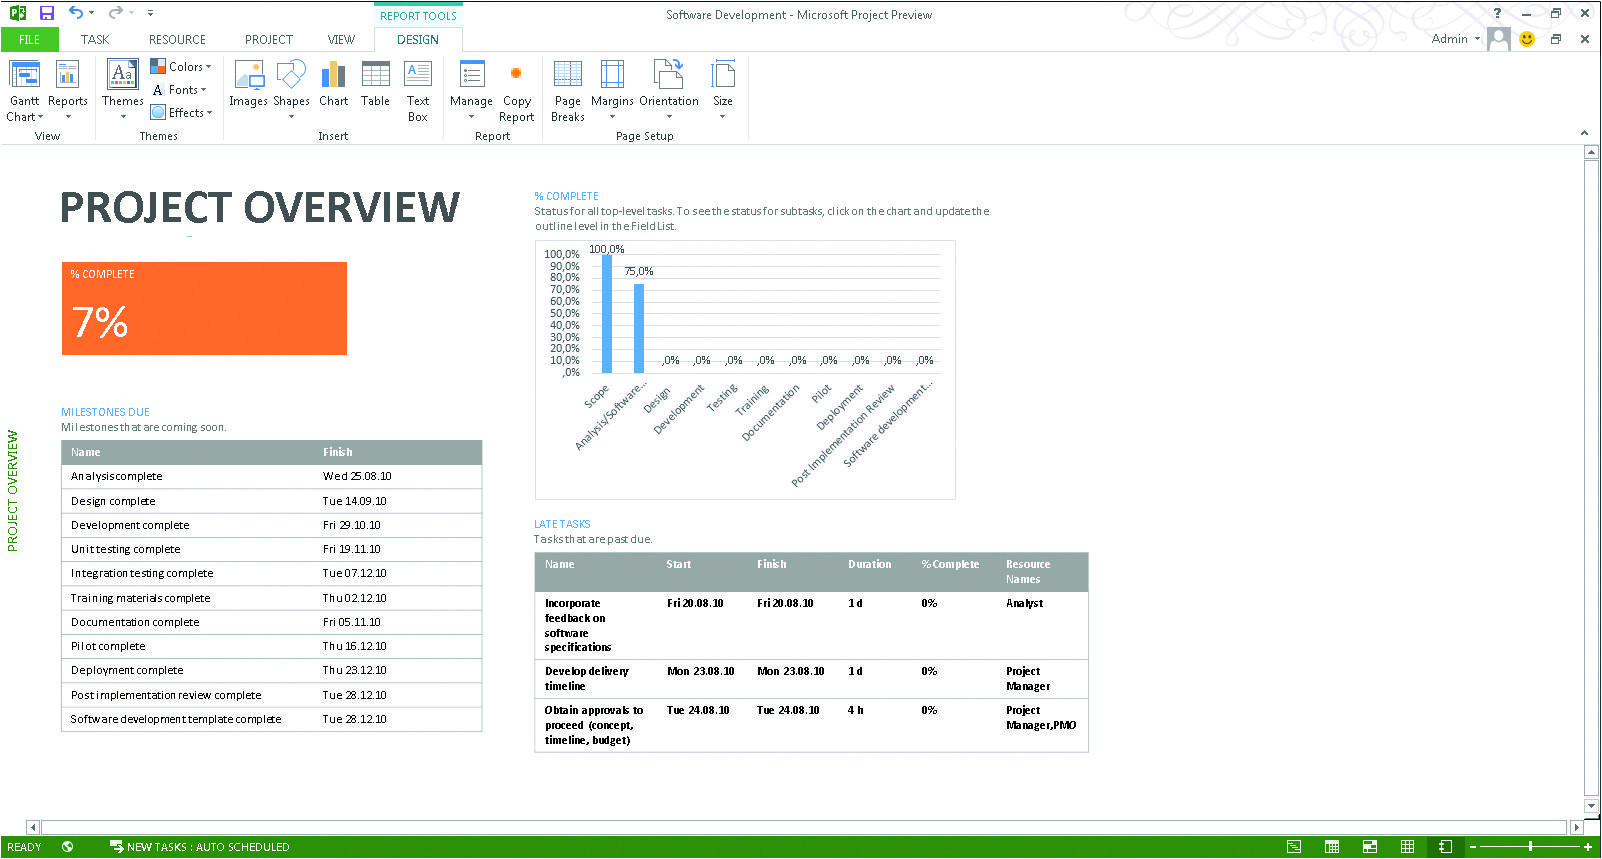 Ms Project 2013 Report Templates Microsoft Project 2013 What New Business Application